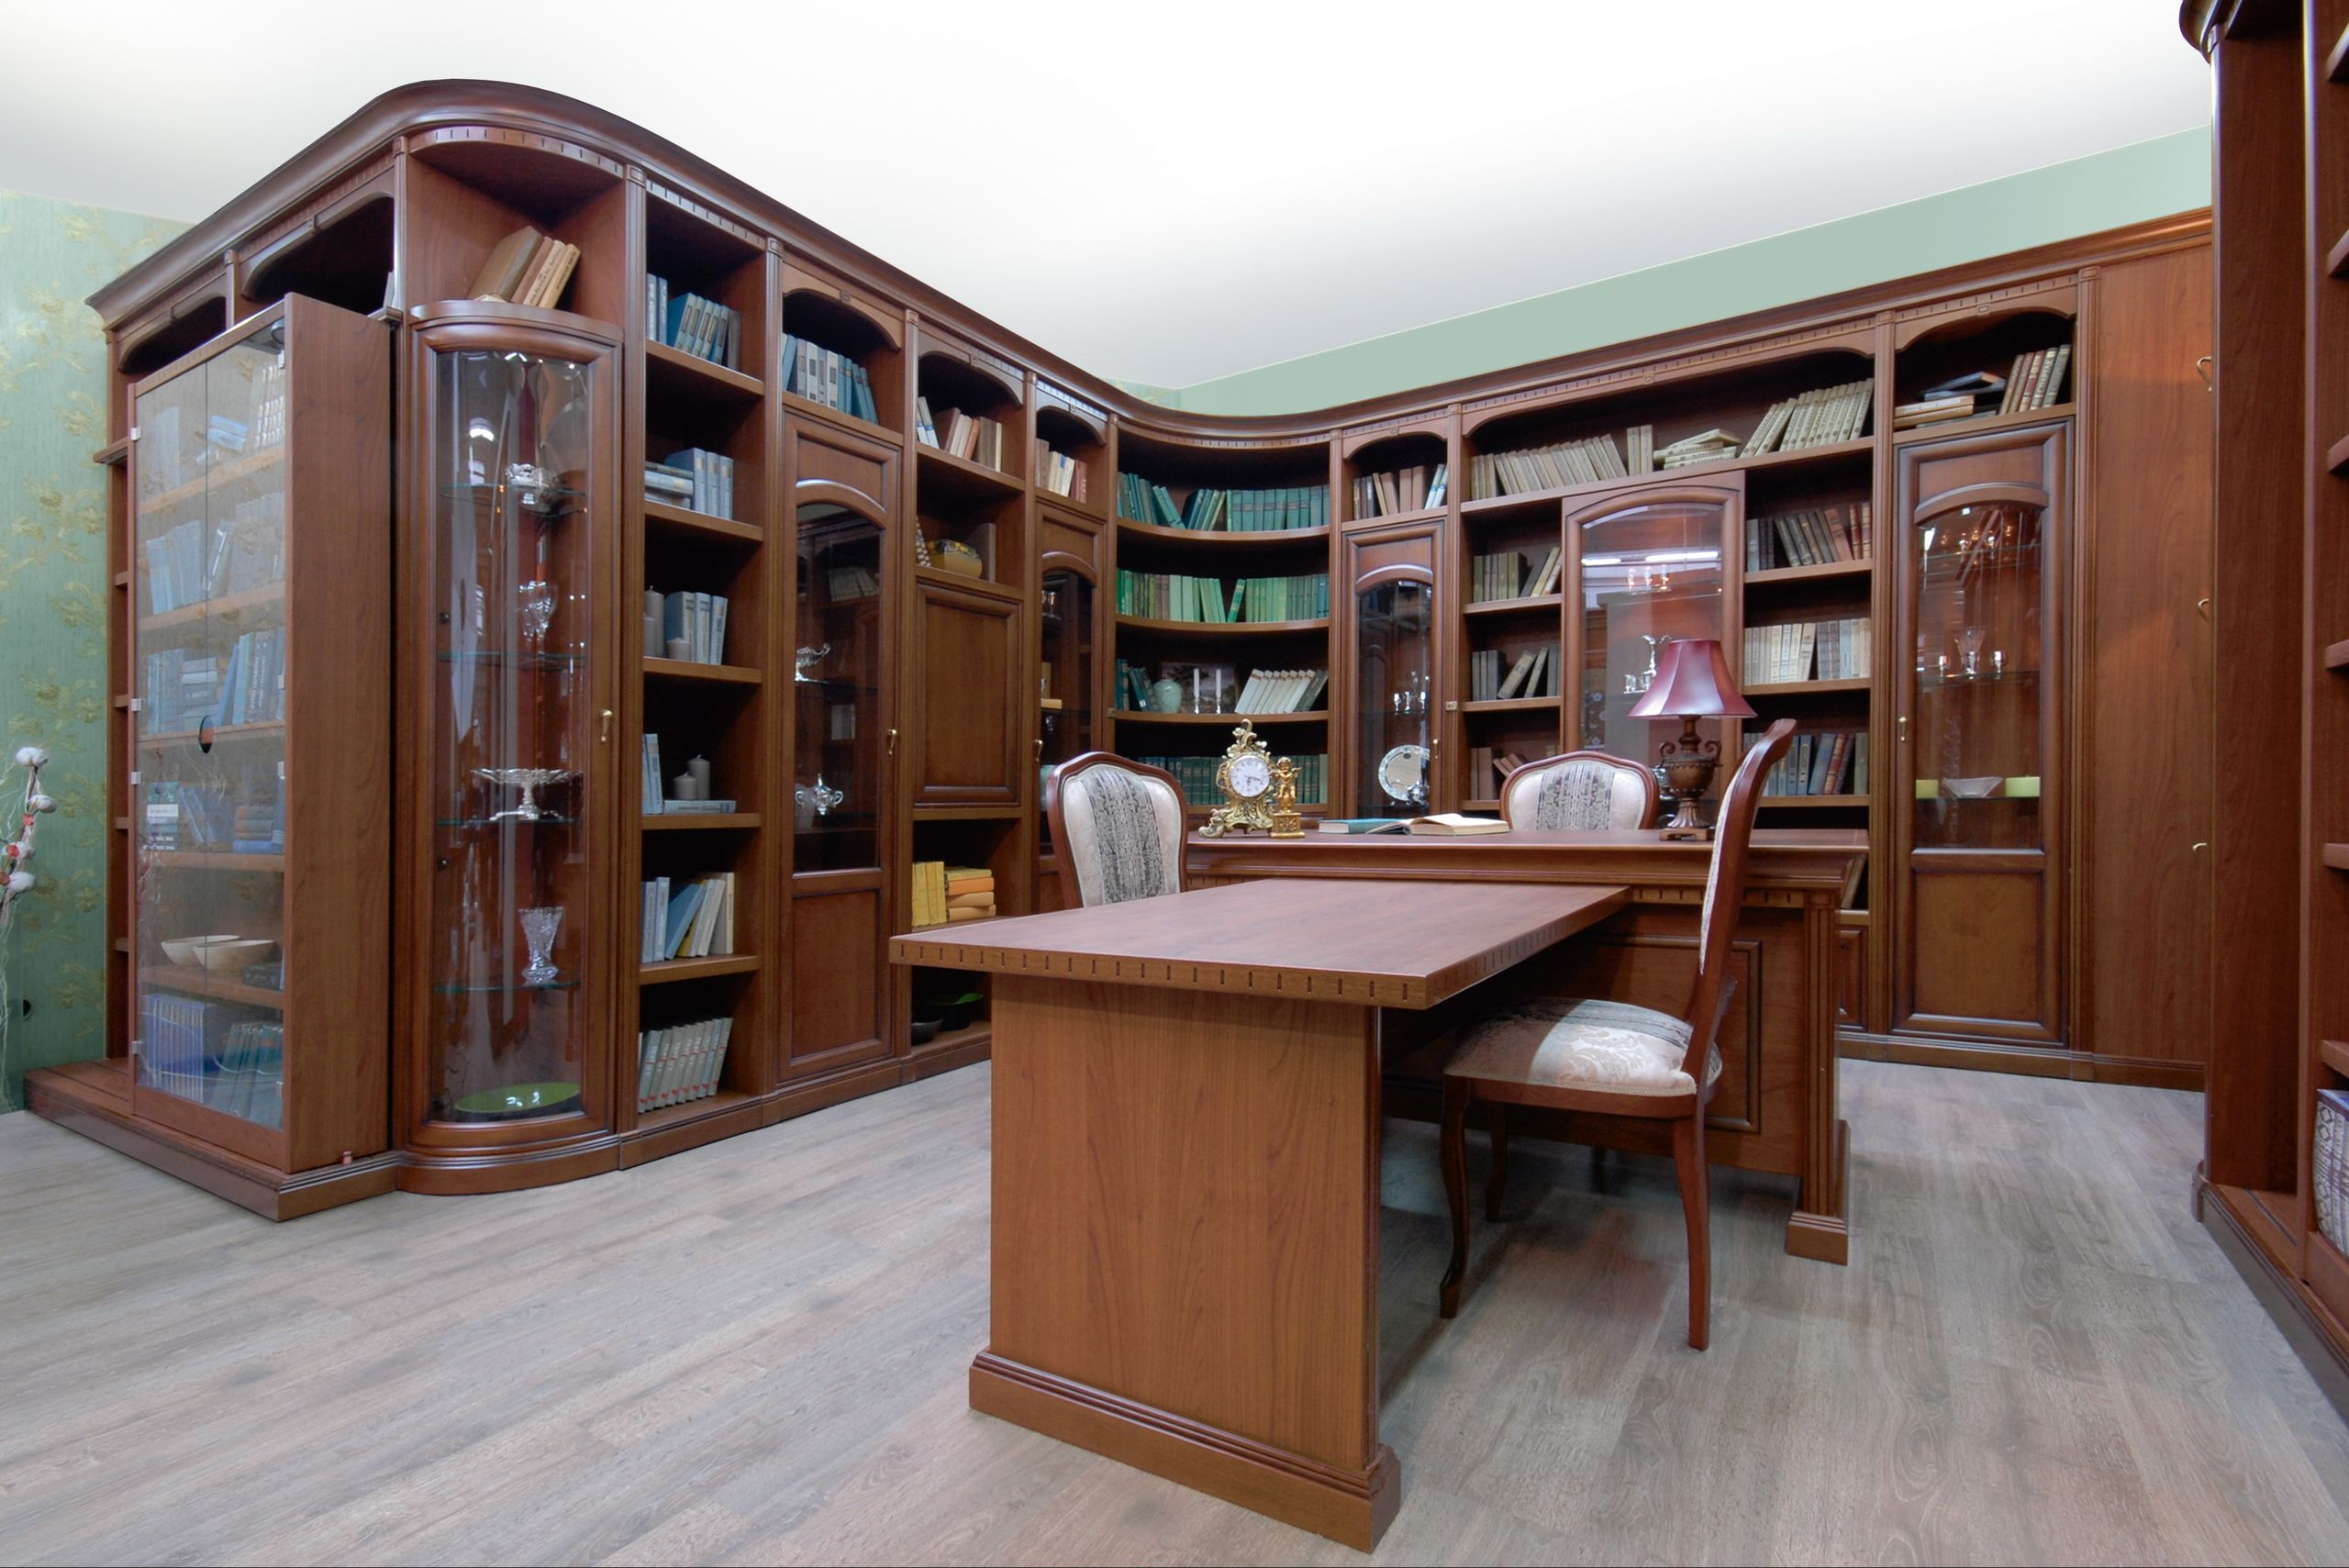 Home offices fitted furniture Strachan Home Office Fitted Furniture Wwwpaolomarchetticom Strachan Furniture Home Office Fitted Furniture Wwwpaolomarchetticom Home Office